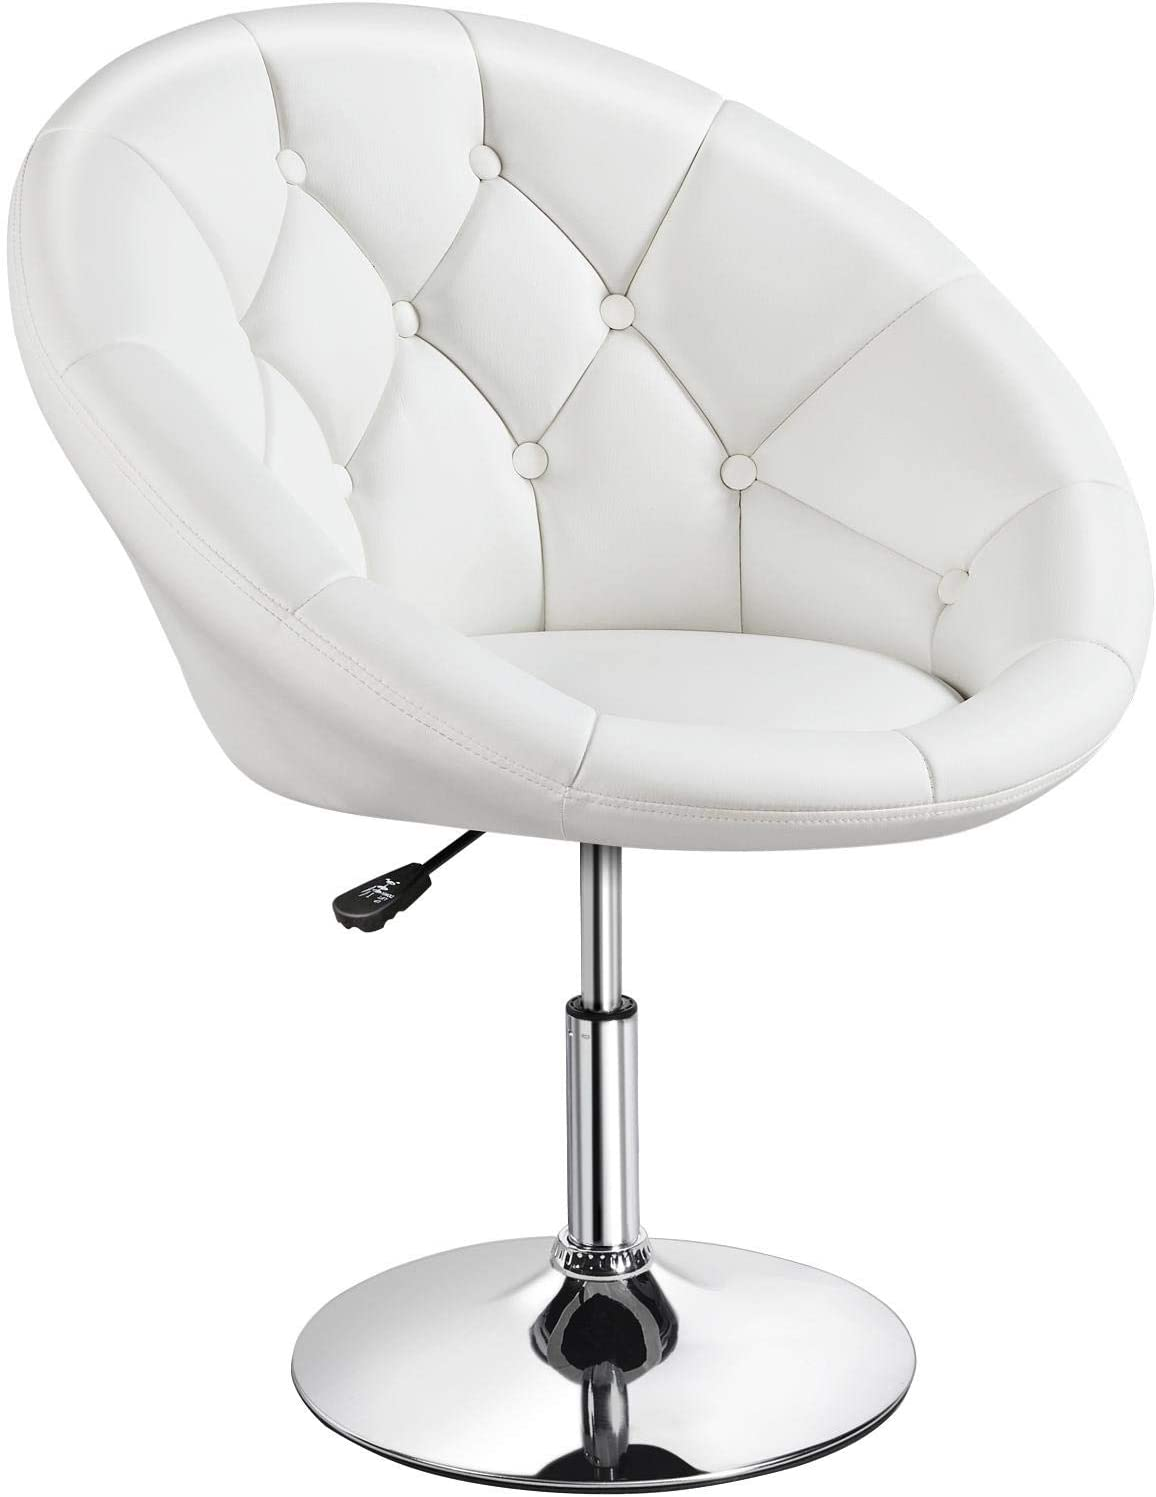 Yaheetech Height Adjustable Modern Round Tufted Back Chair Upholstered  Swivel Barrel Chair Vanity Chair Barstool Lounge Pub Bar Capable of